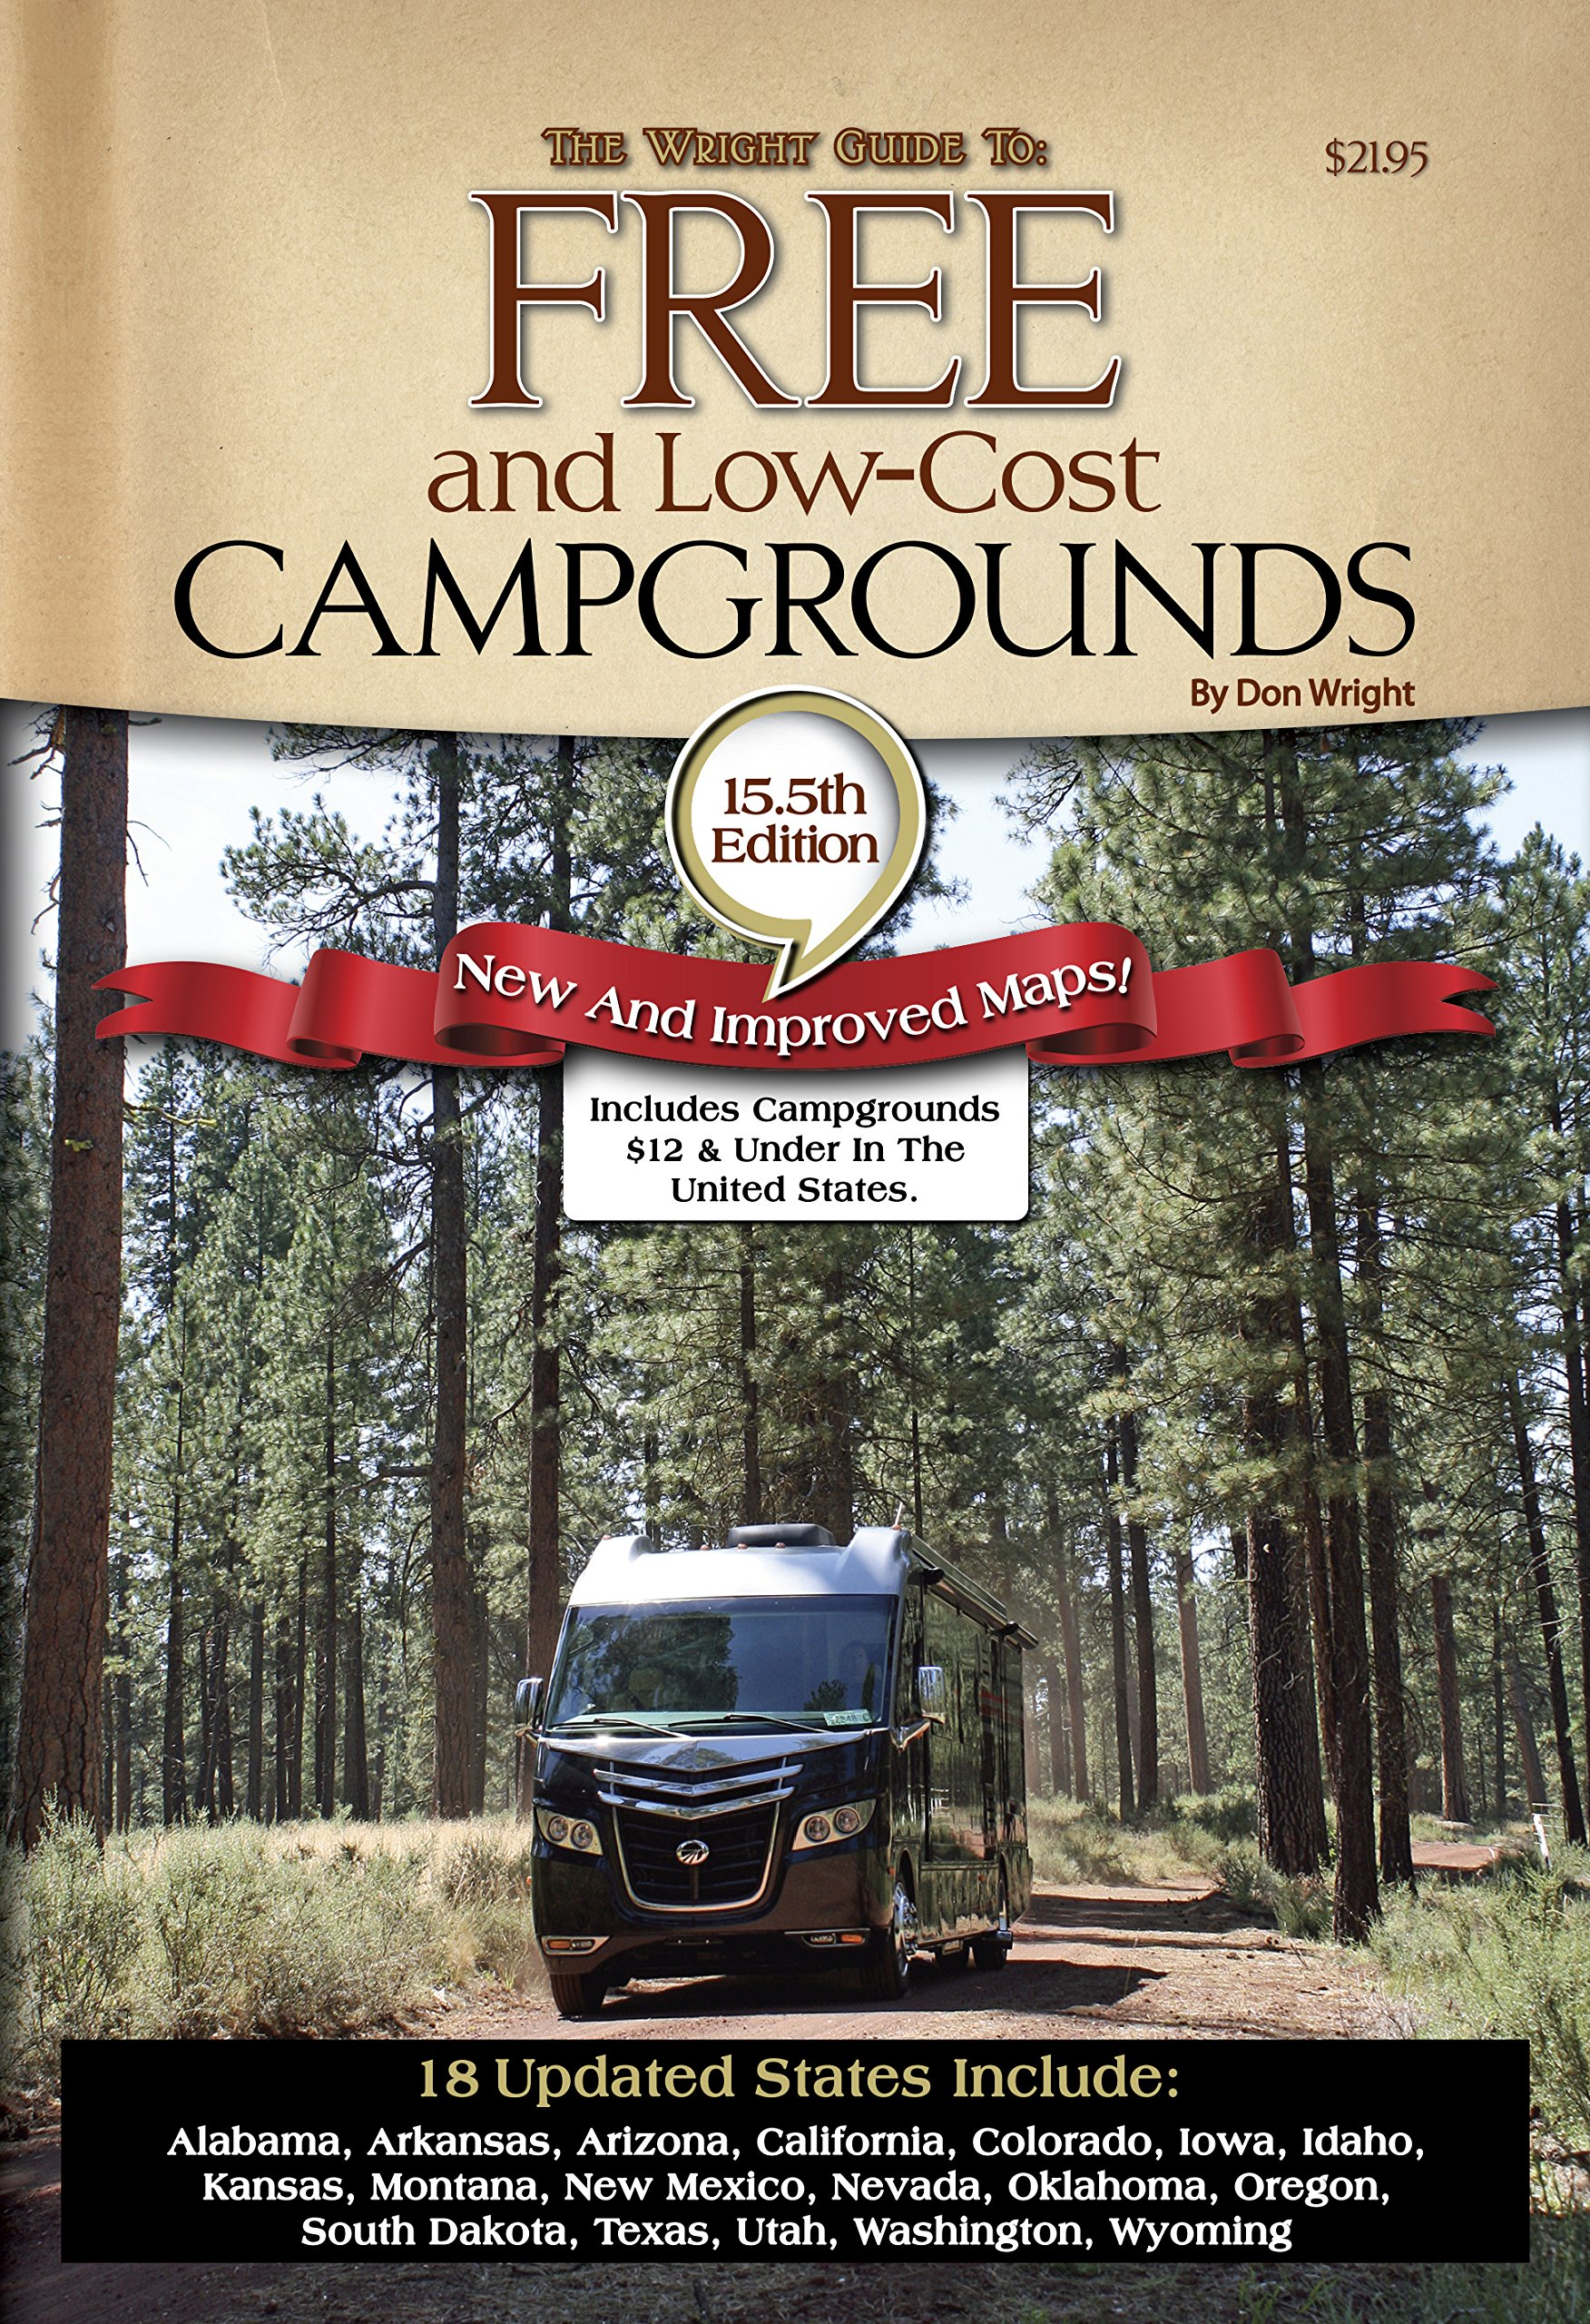 Camping America's Guide to Free and Low-Cost Campgrounds: Includes on national parks united states, koa delta map, koa camps in oklahoma, koa oklahoma map, interstate highways united states, koa map of united states,